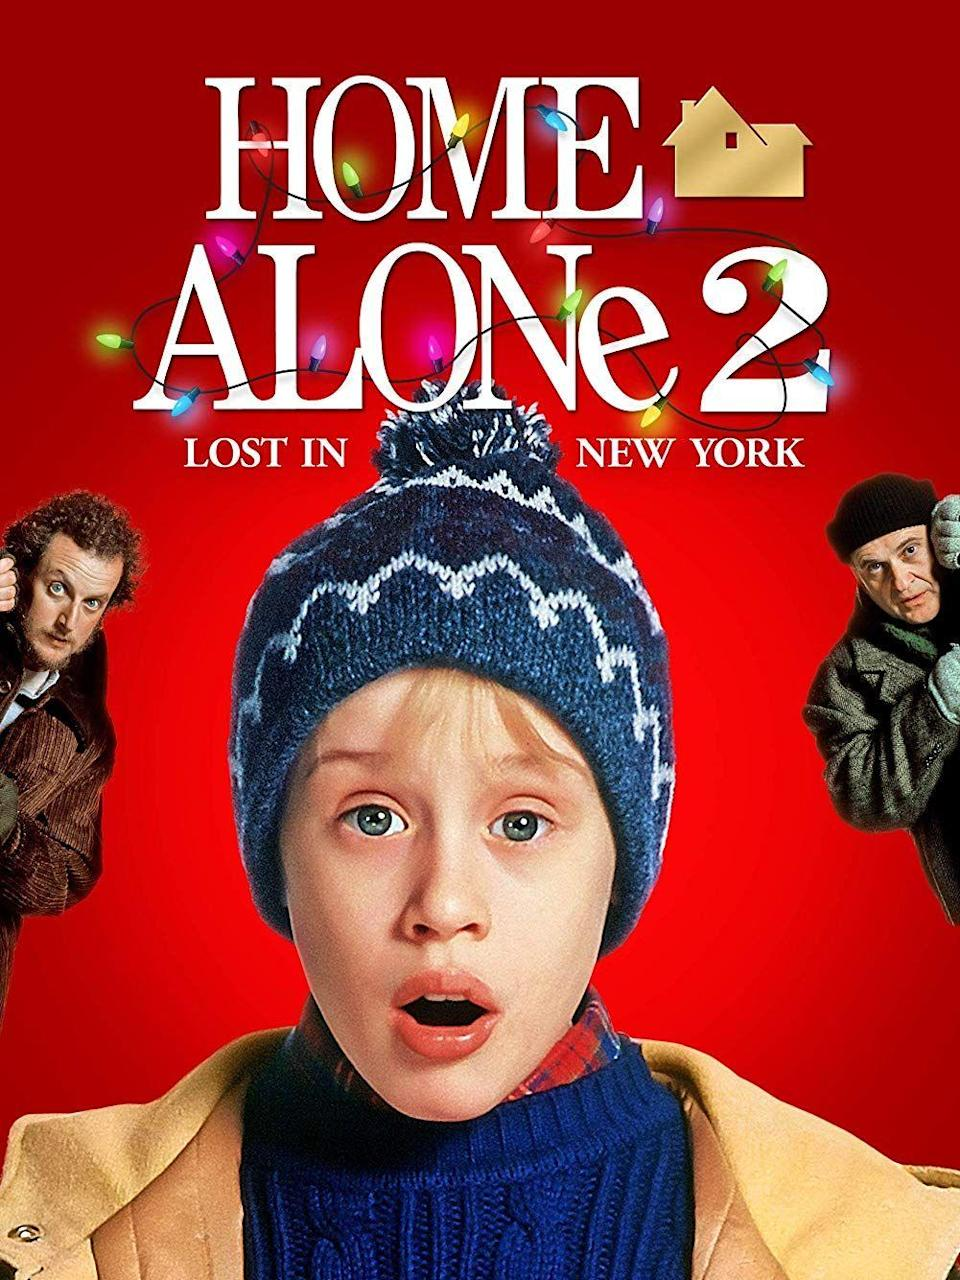 """<p>Kevin McCallister's family manages to leave him behind yet again in <em>Home Alone 2</em> ... and this time around he ends up in New York City, where he manages to outwit the Wet Bandits once more.</p><p><a class=""""link rapid-noclick-resp"""" href=""""https://www.amazon.com/Home-Alone-Lost-New-York/dp/B00AGH54XK/?tag=syn-yahoo-20&ascsubtag=%5Bartid%7C10055.g.1315%5Bsrc%7Cyahoo-us"""" rel=""""nofollow noopener"""" target=""""_blank"""" data-ylk=""""slk:WATCH NOW"""">WATCH NOW</a></p>"""